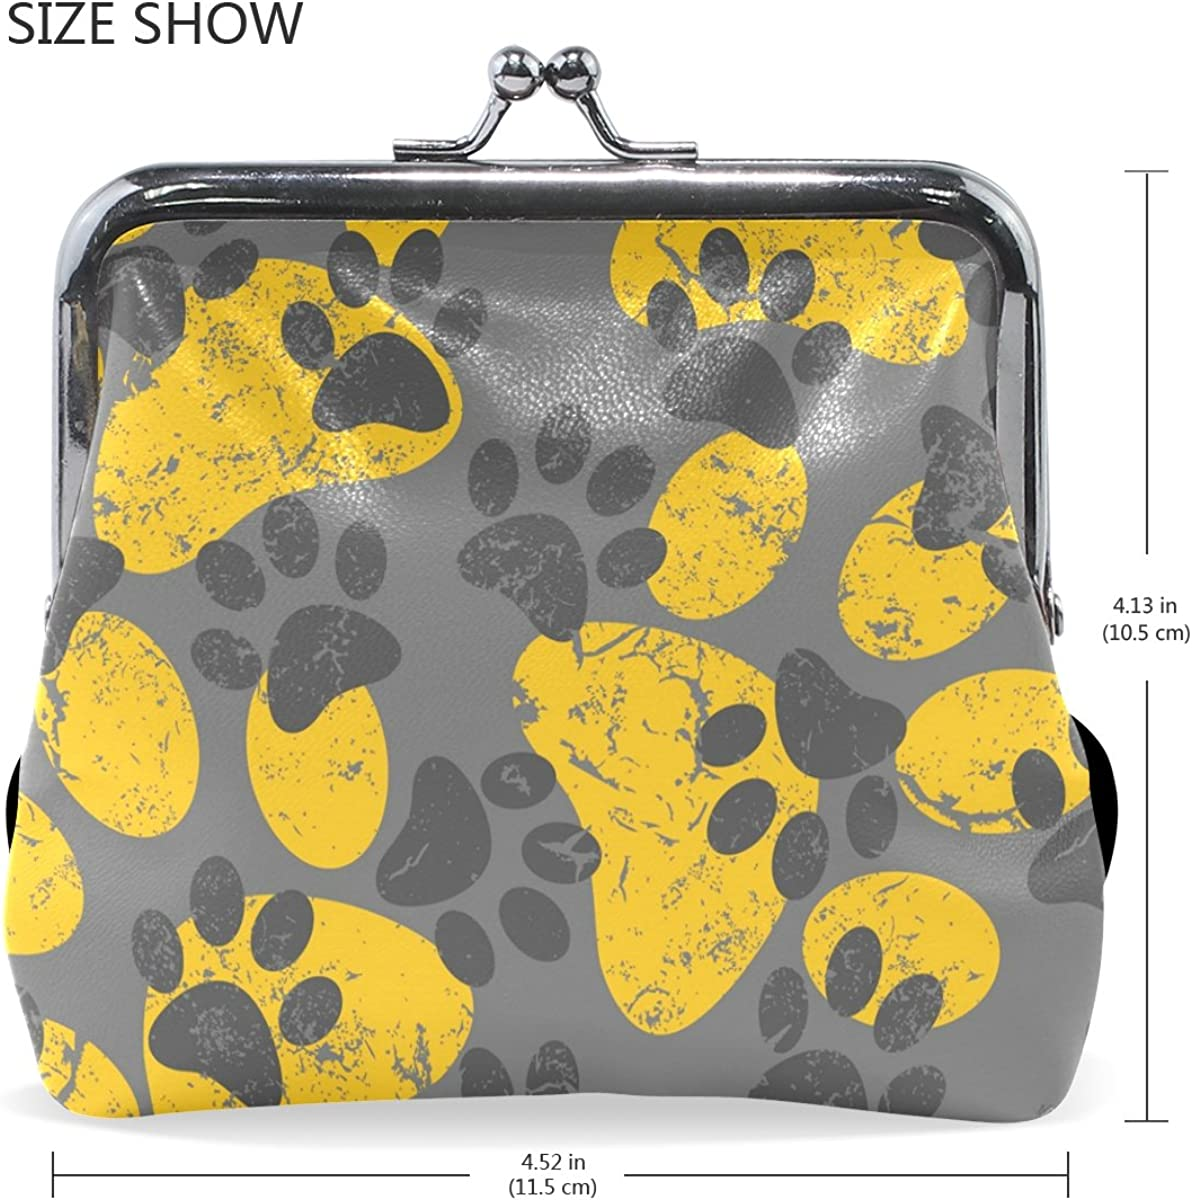 Sunlome Cat Dog Gray Yellow Paws Footprints Coin Purse Change Cash Bag Small Purse Wallets for Women Girl